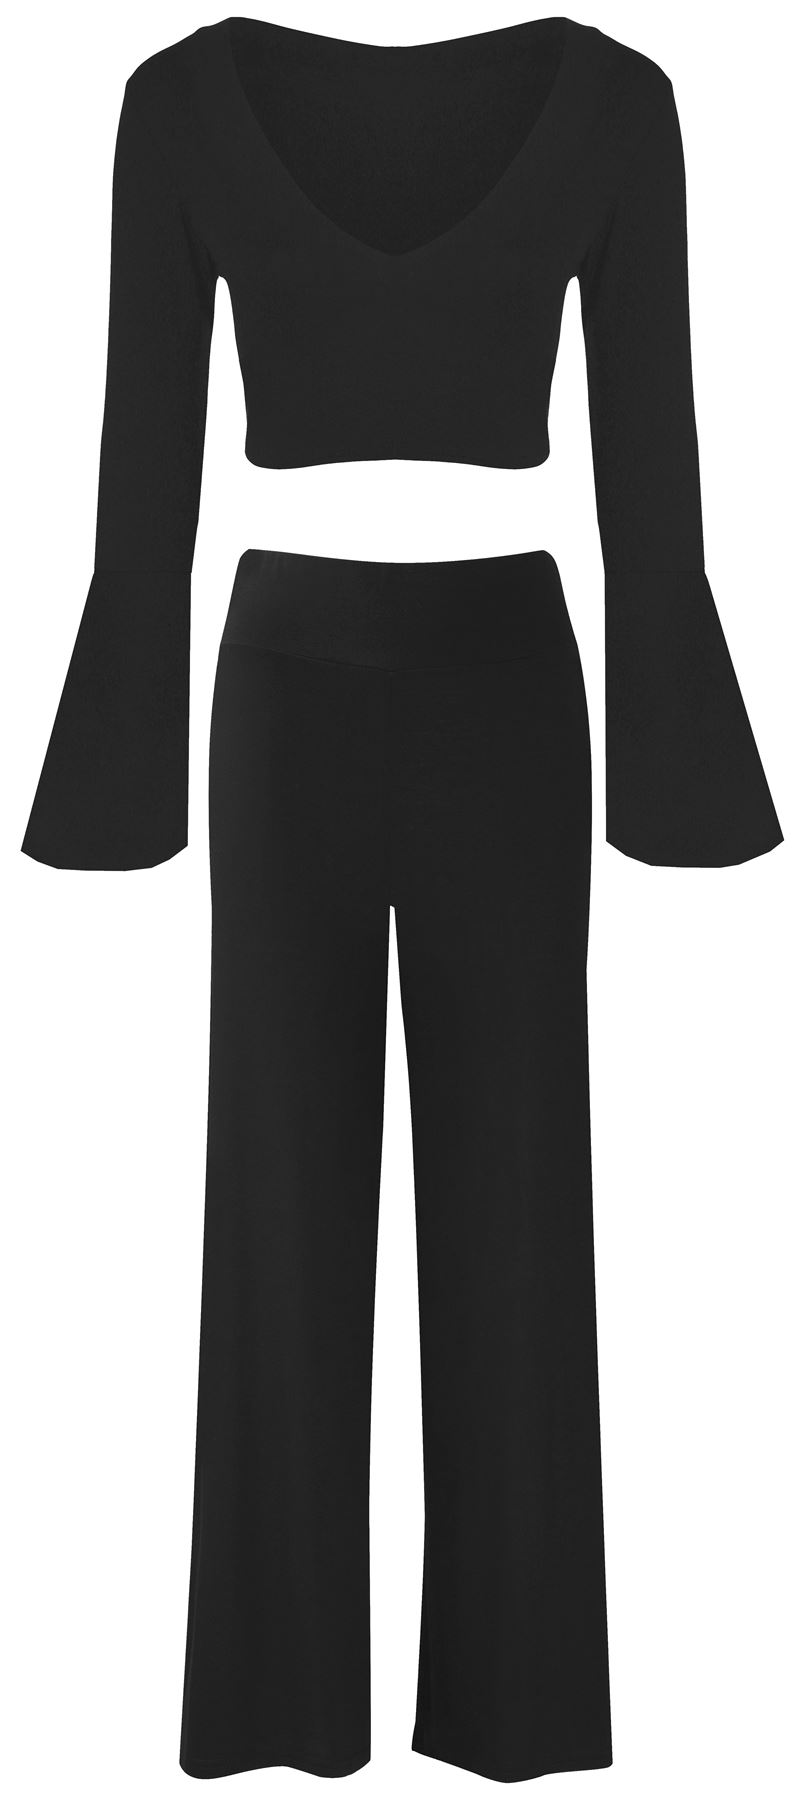 New Ladies Bell Sleeve Wrap Top Wide Leg Palazzo Pant Suits 8-14